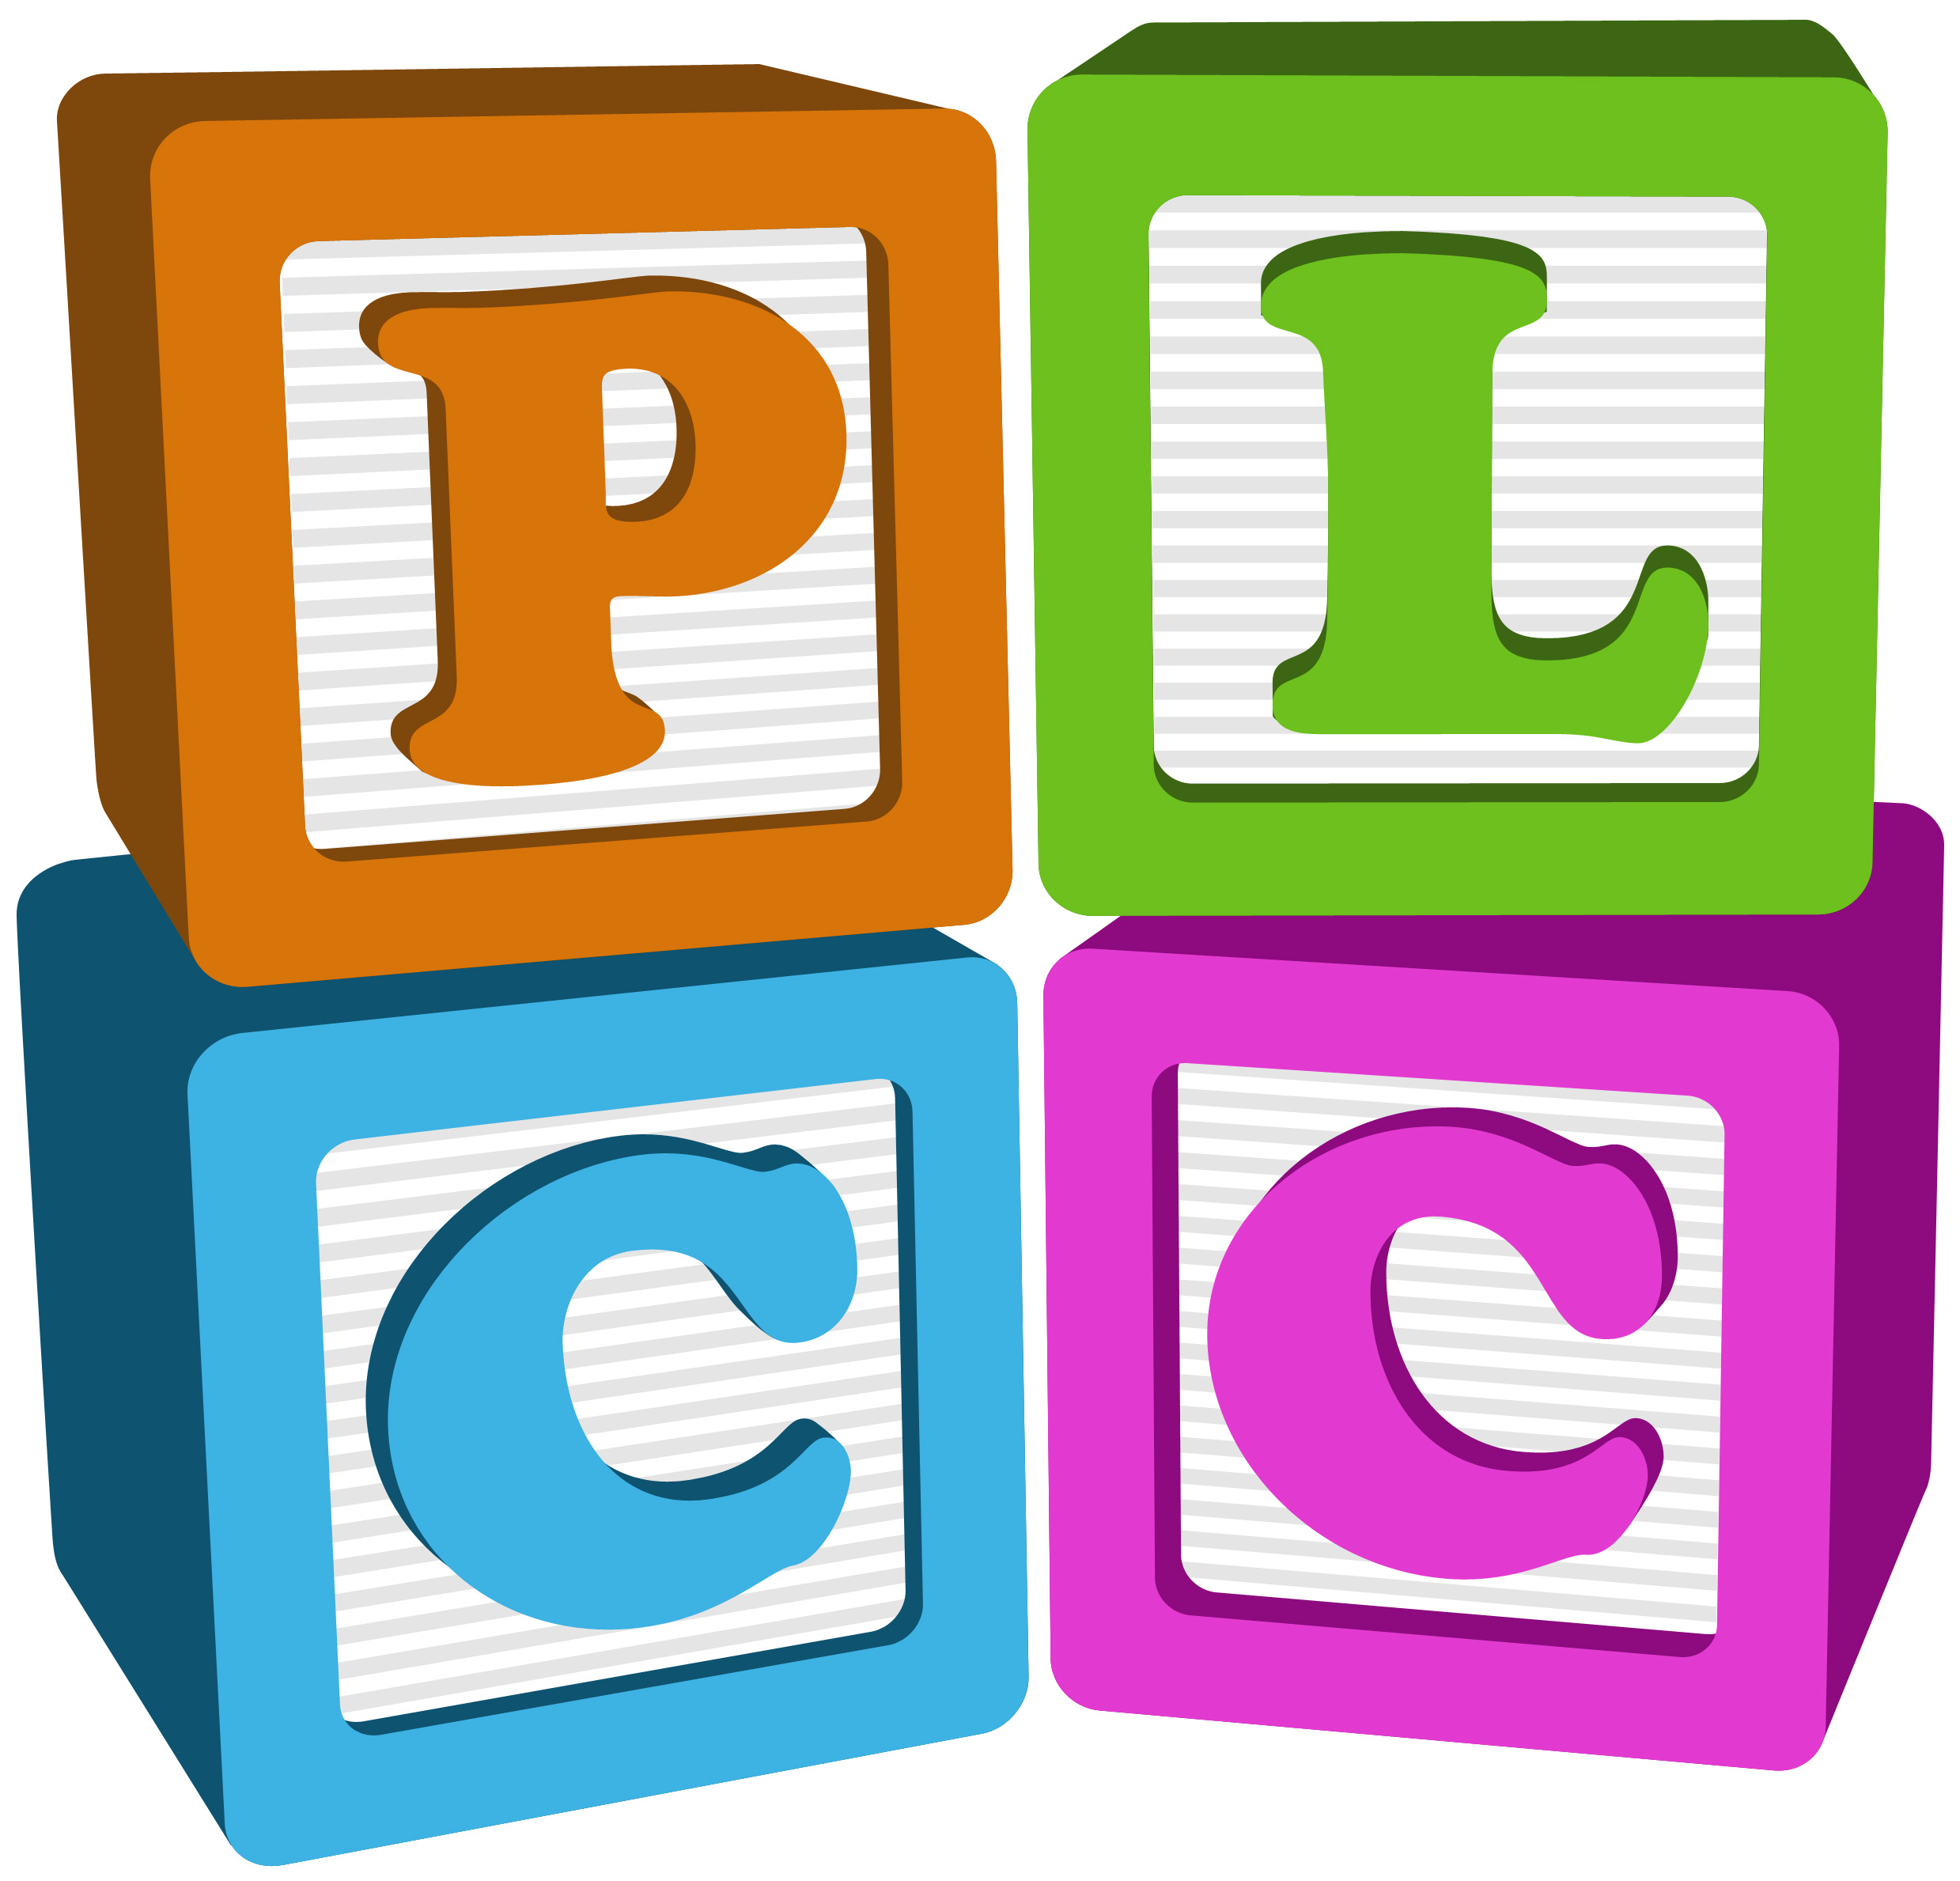 Playway Loving Child Care Center